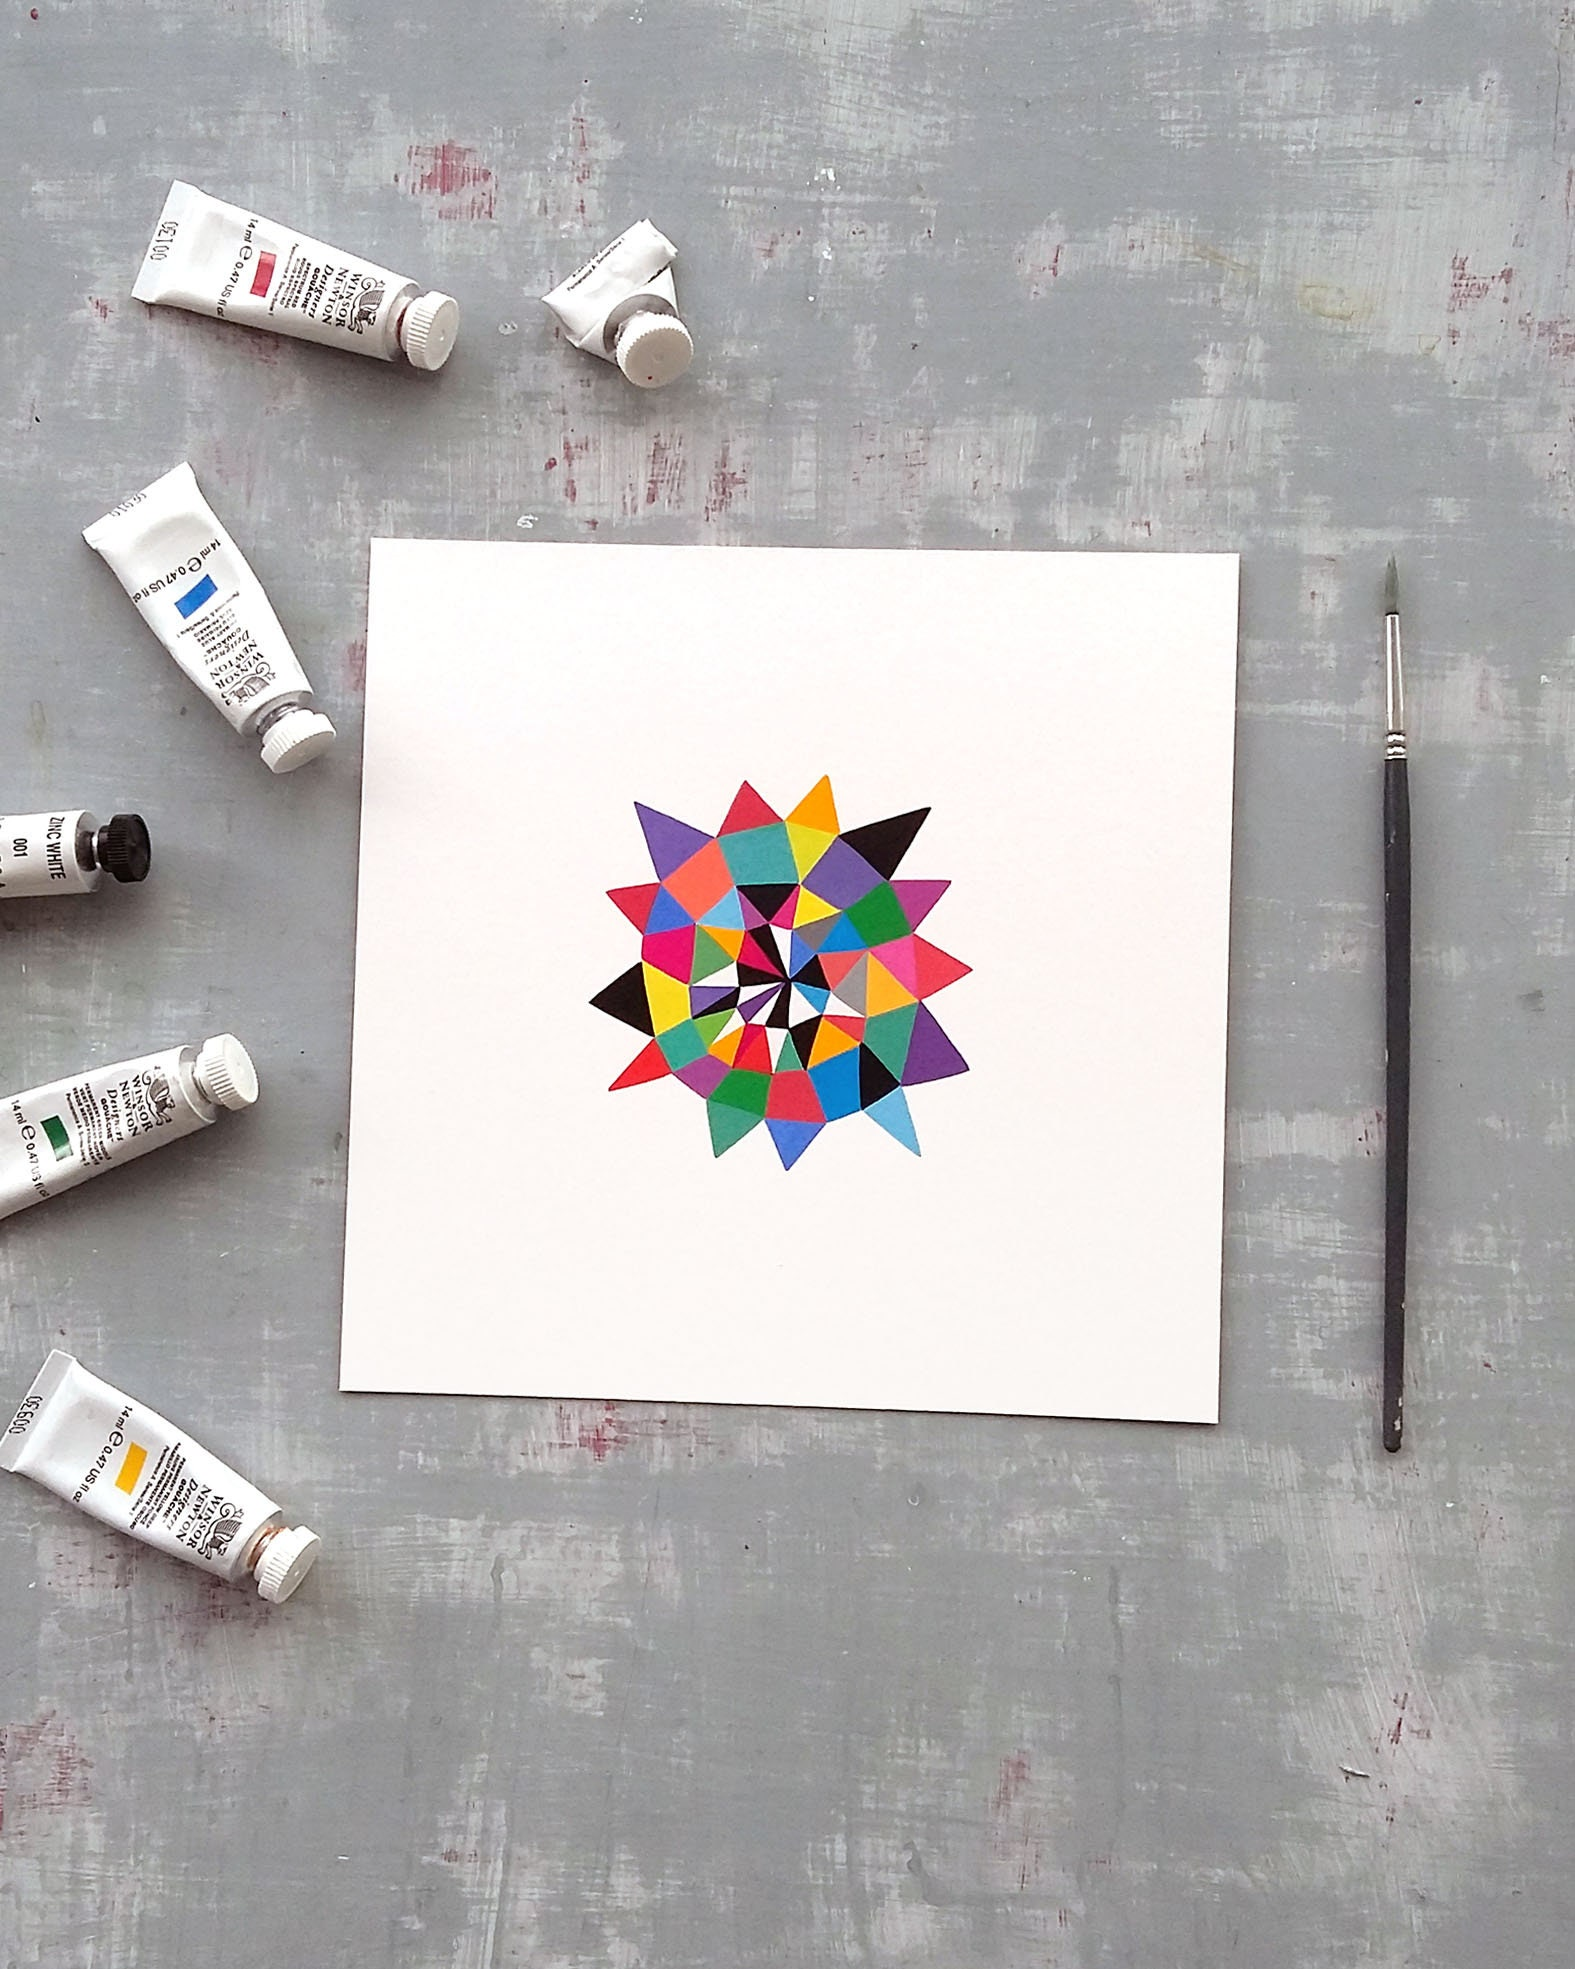 Star_008, small geometric art on paper - product image